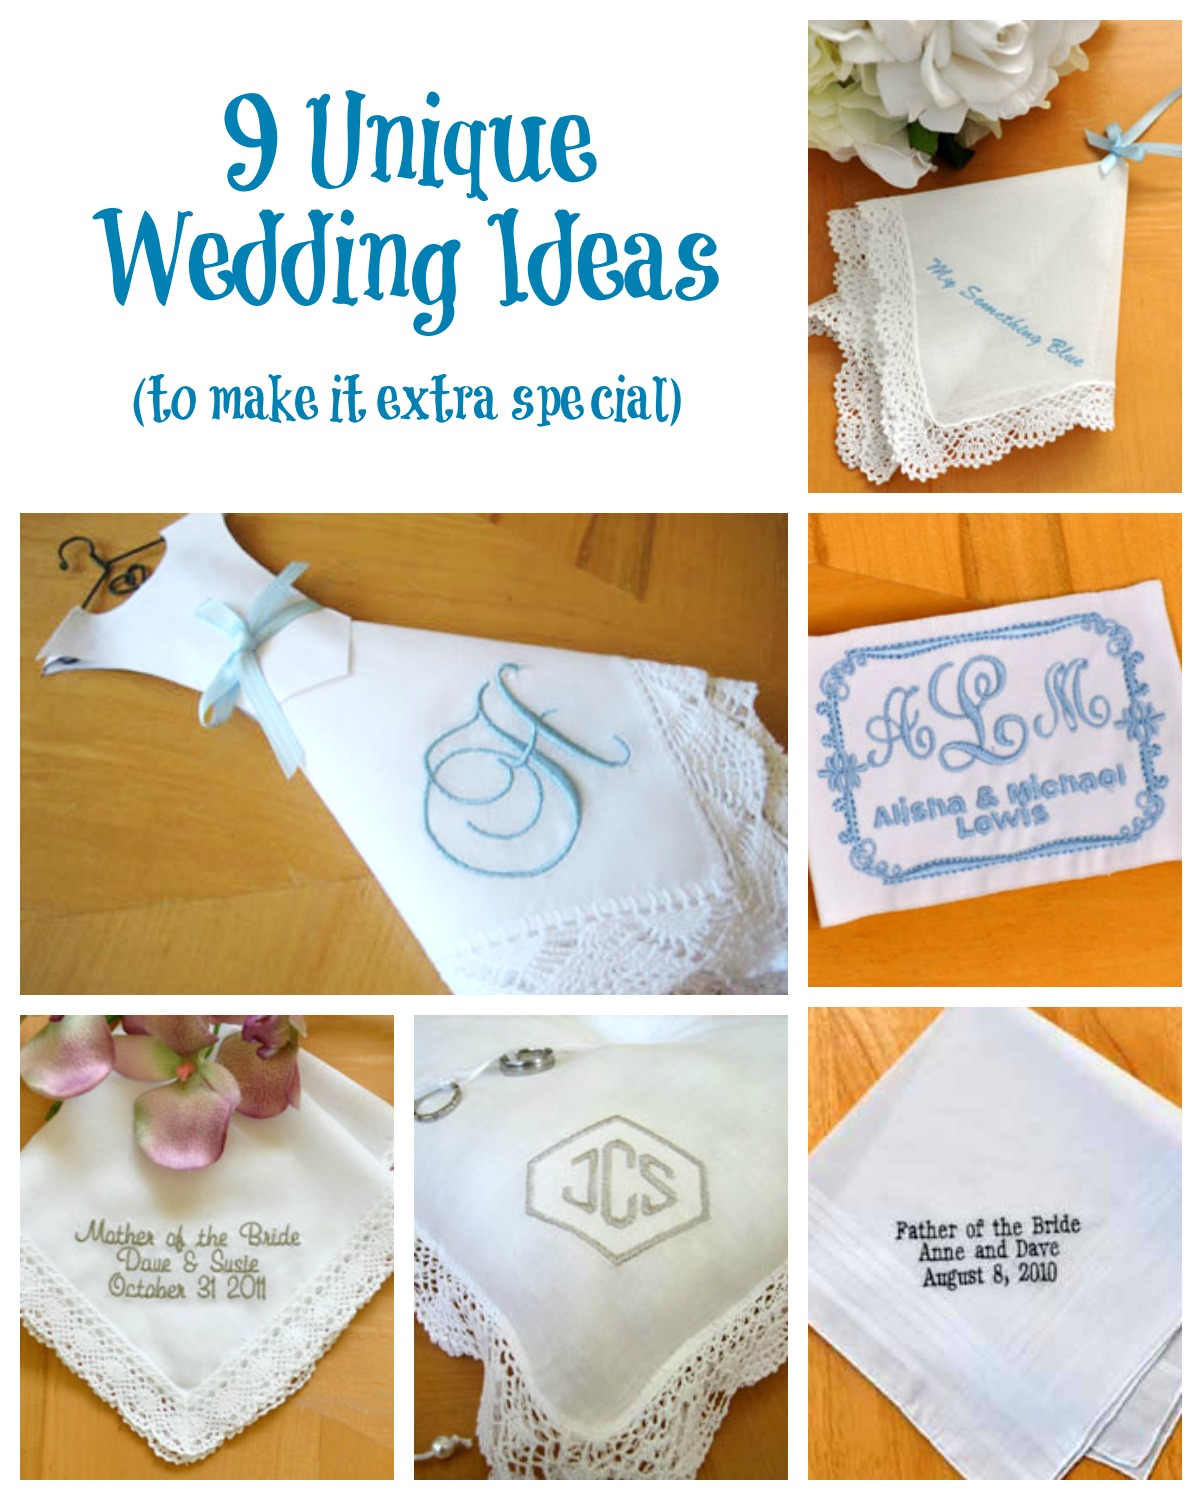 Wedding Ideas Different: 9 Unique Wedding Ideas To Make Your Wedding Extra Special